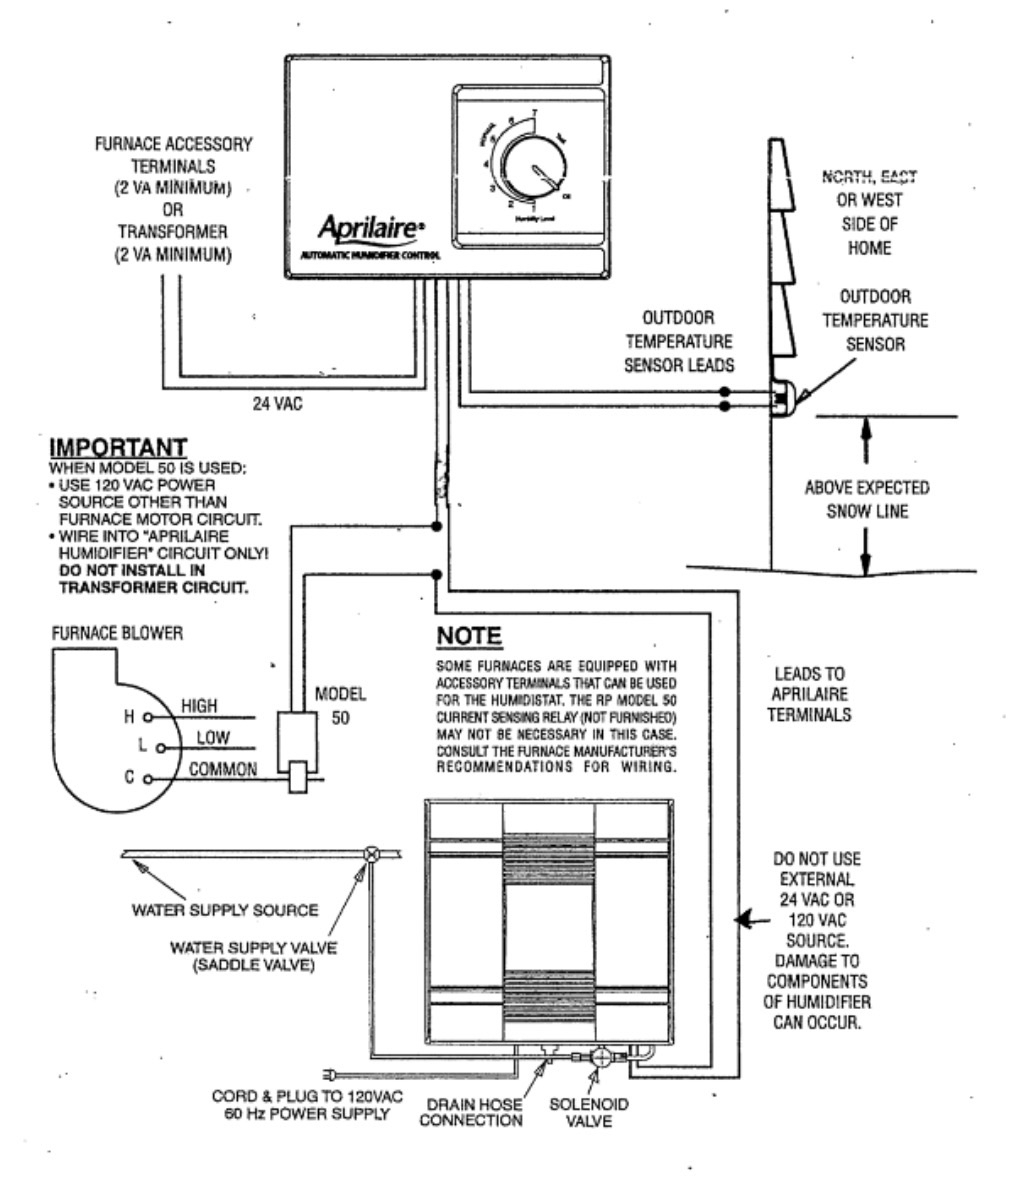 aprilaire model 600 wiring diagram Download-aprilaire 600 wiring diagram Download Aprilaire Wiring Diagram 19 d 11-b